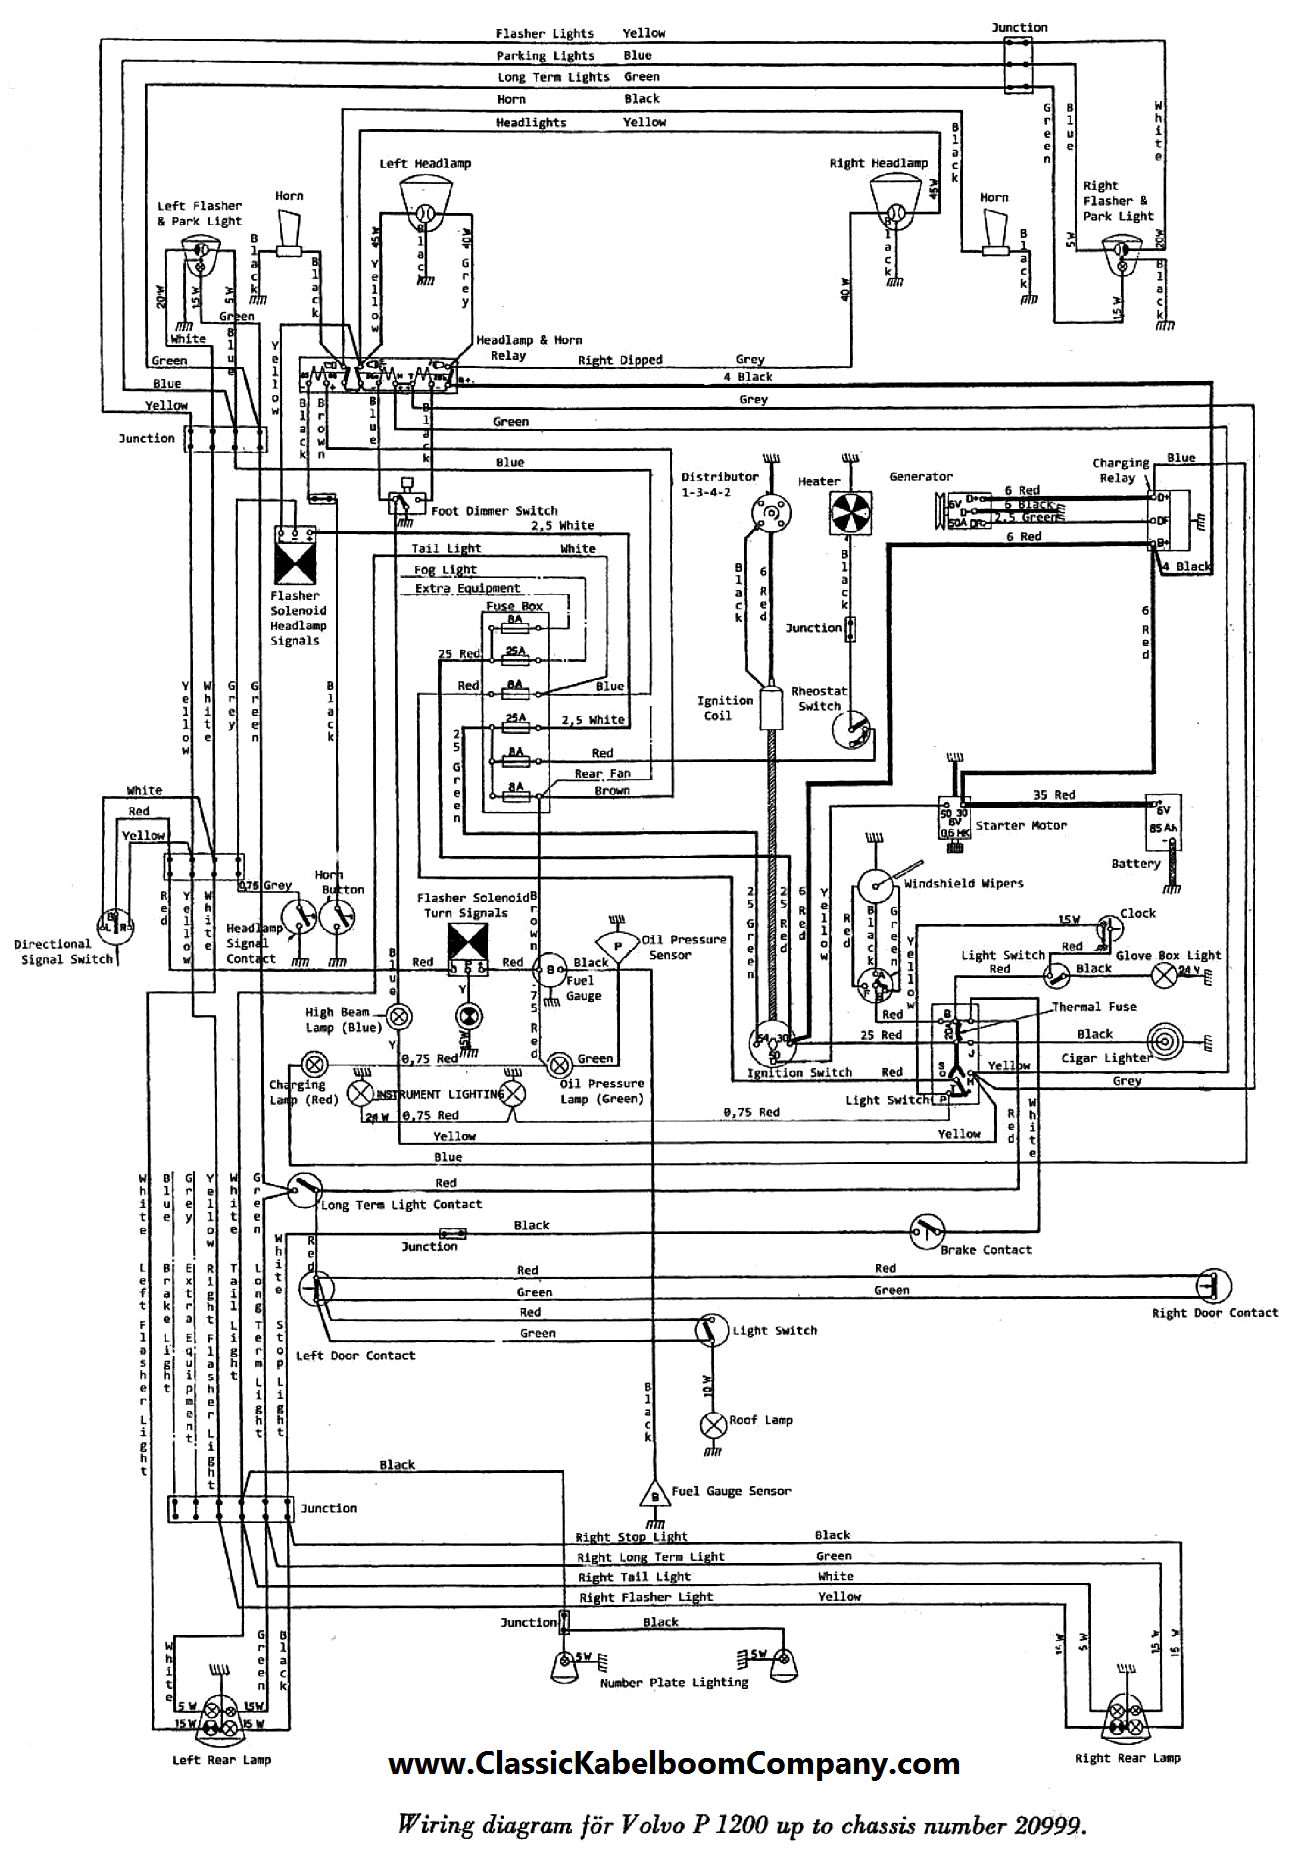 Fuse Box Wiring Process additionally Wiring Diagram For 1985 Porsche 911 in addition Viewtopic besides 1998 Porsche Boxster Vacuum Diagram besides Karmann Ghia Fuse Box. on porsche 911 alternator wiring